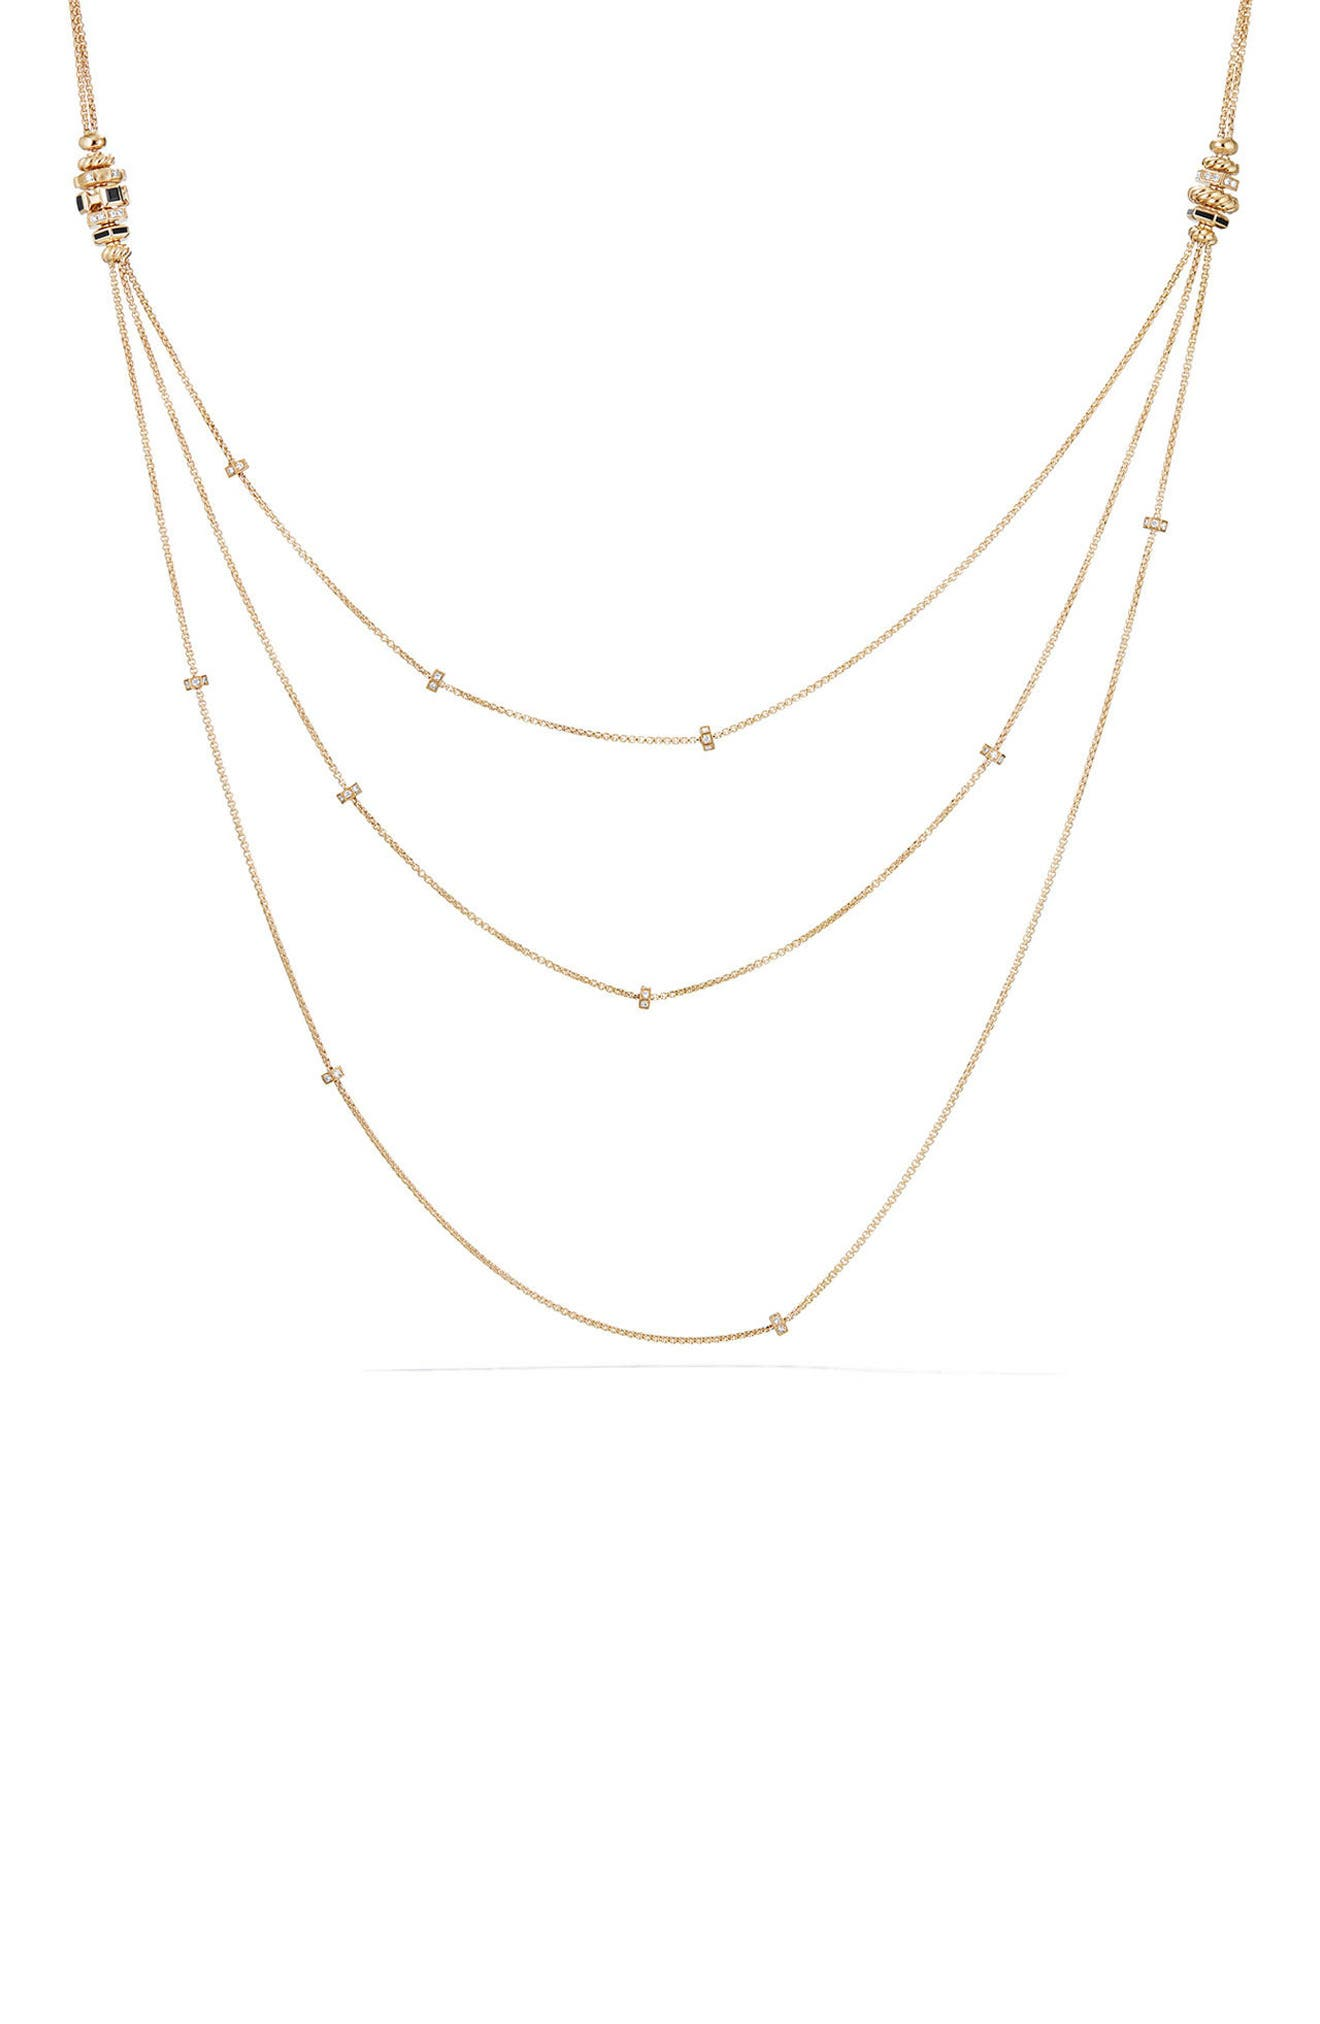 Stax 18K Gold Chain Necklace with Diamonds,                             Main thumbnail 1, color,                             BLACK SPINEL